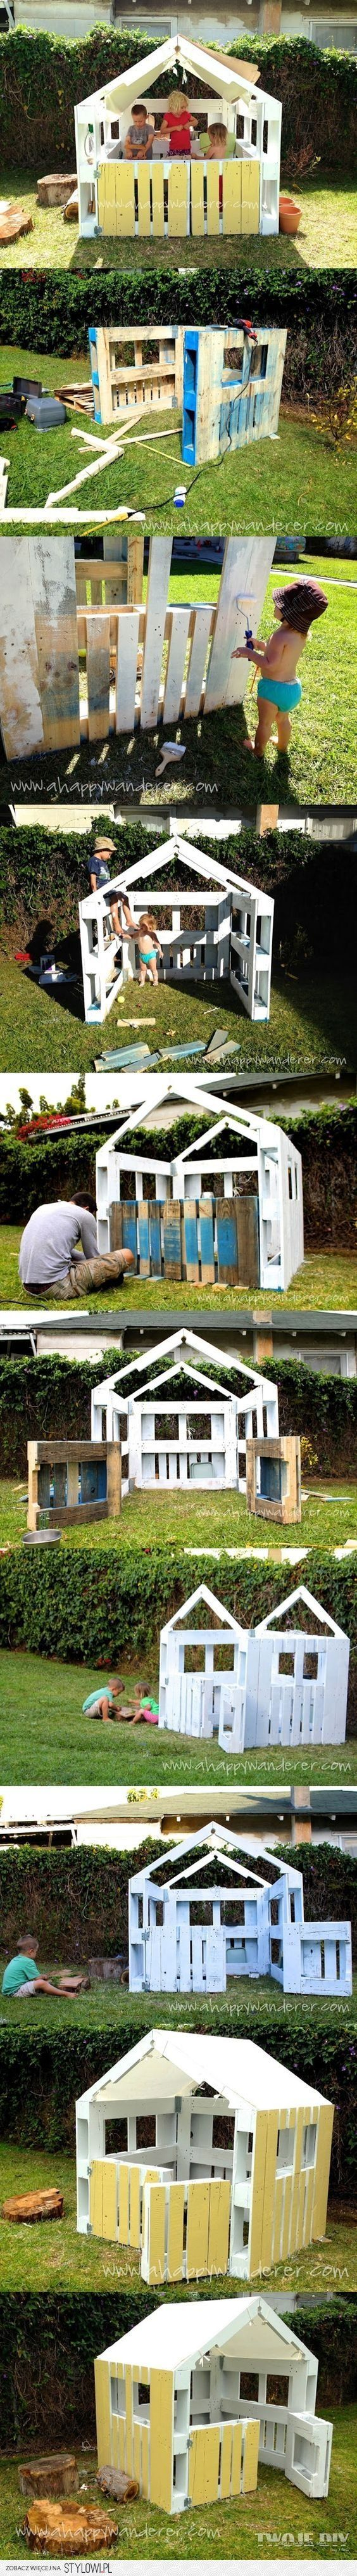 projet cabane pour baby Noé... quand il sera plus grand :-) Announcing: The World's Largest Collection of 16.000 Woodworking Plans! http://tedswoodworking-today.blogspot.com?prod=NUGiaawT